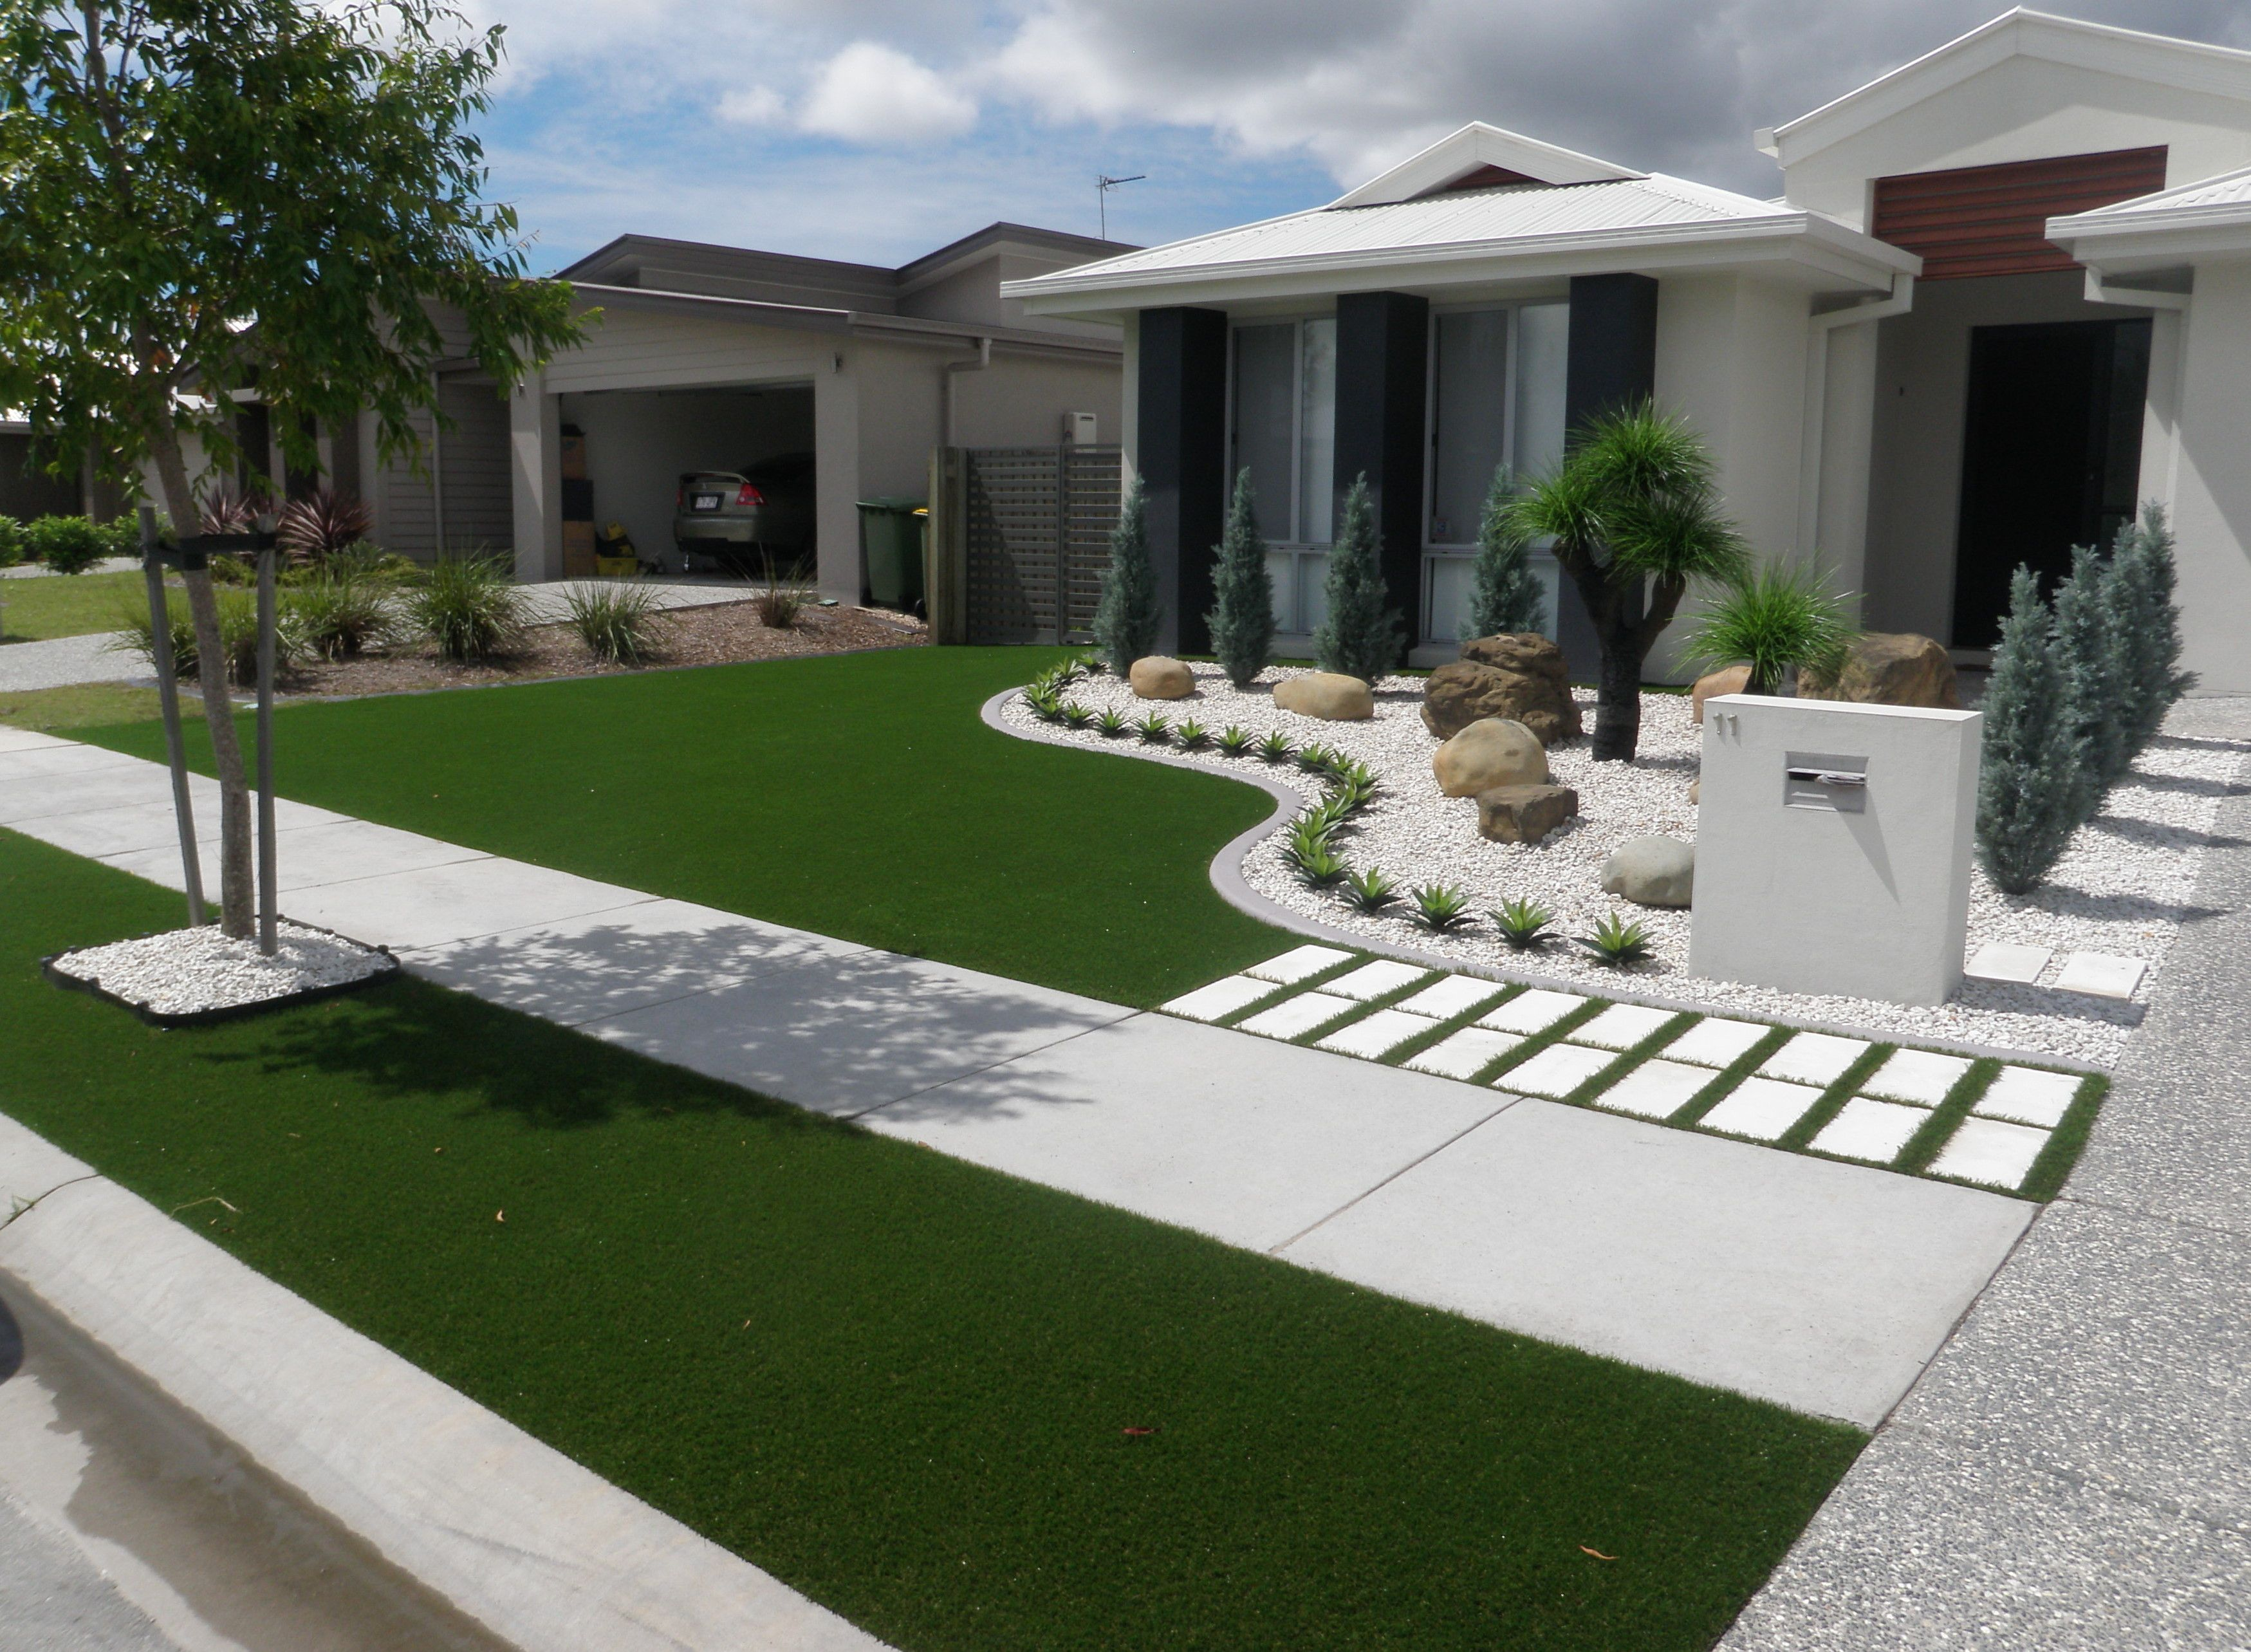 Synthetic grass front yard designs landscape yards for Home landscaping ideas